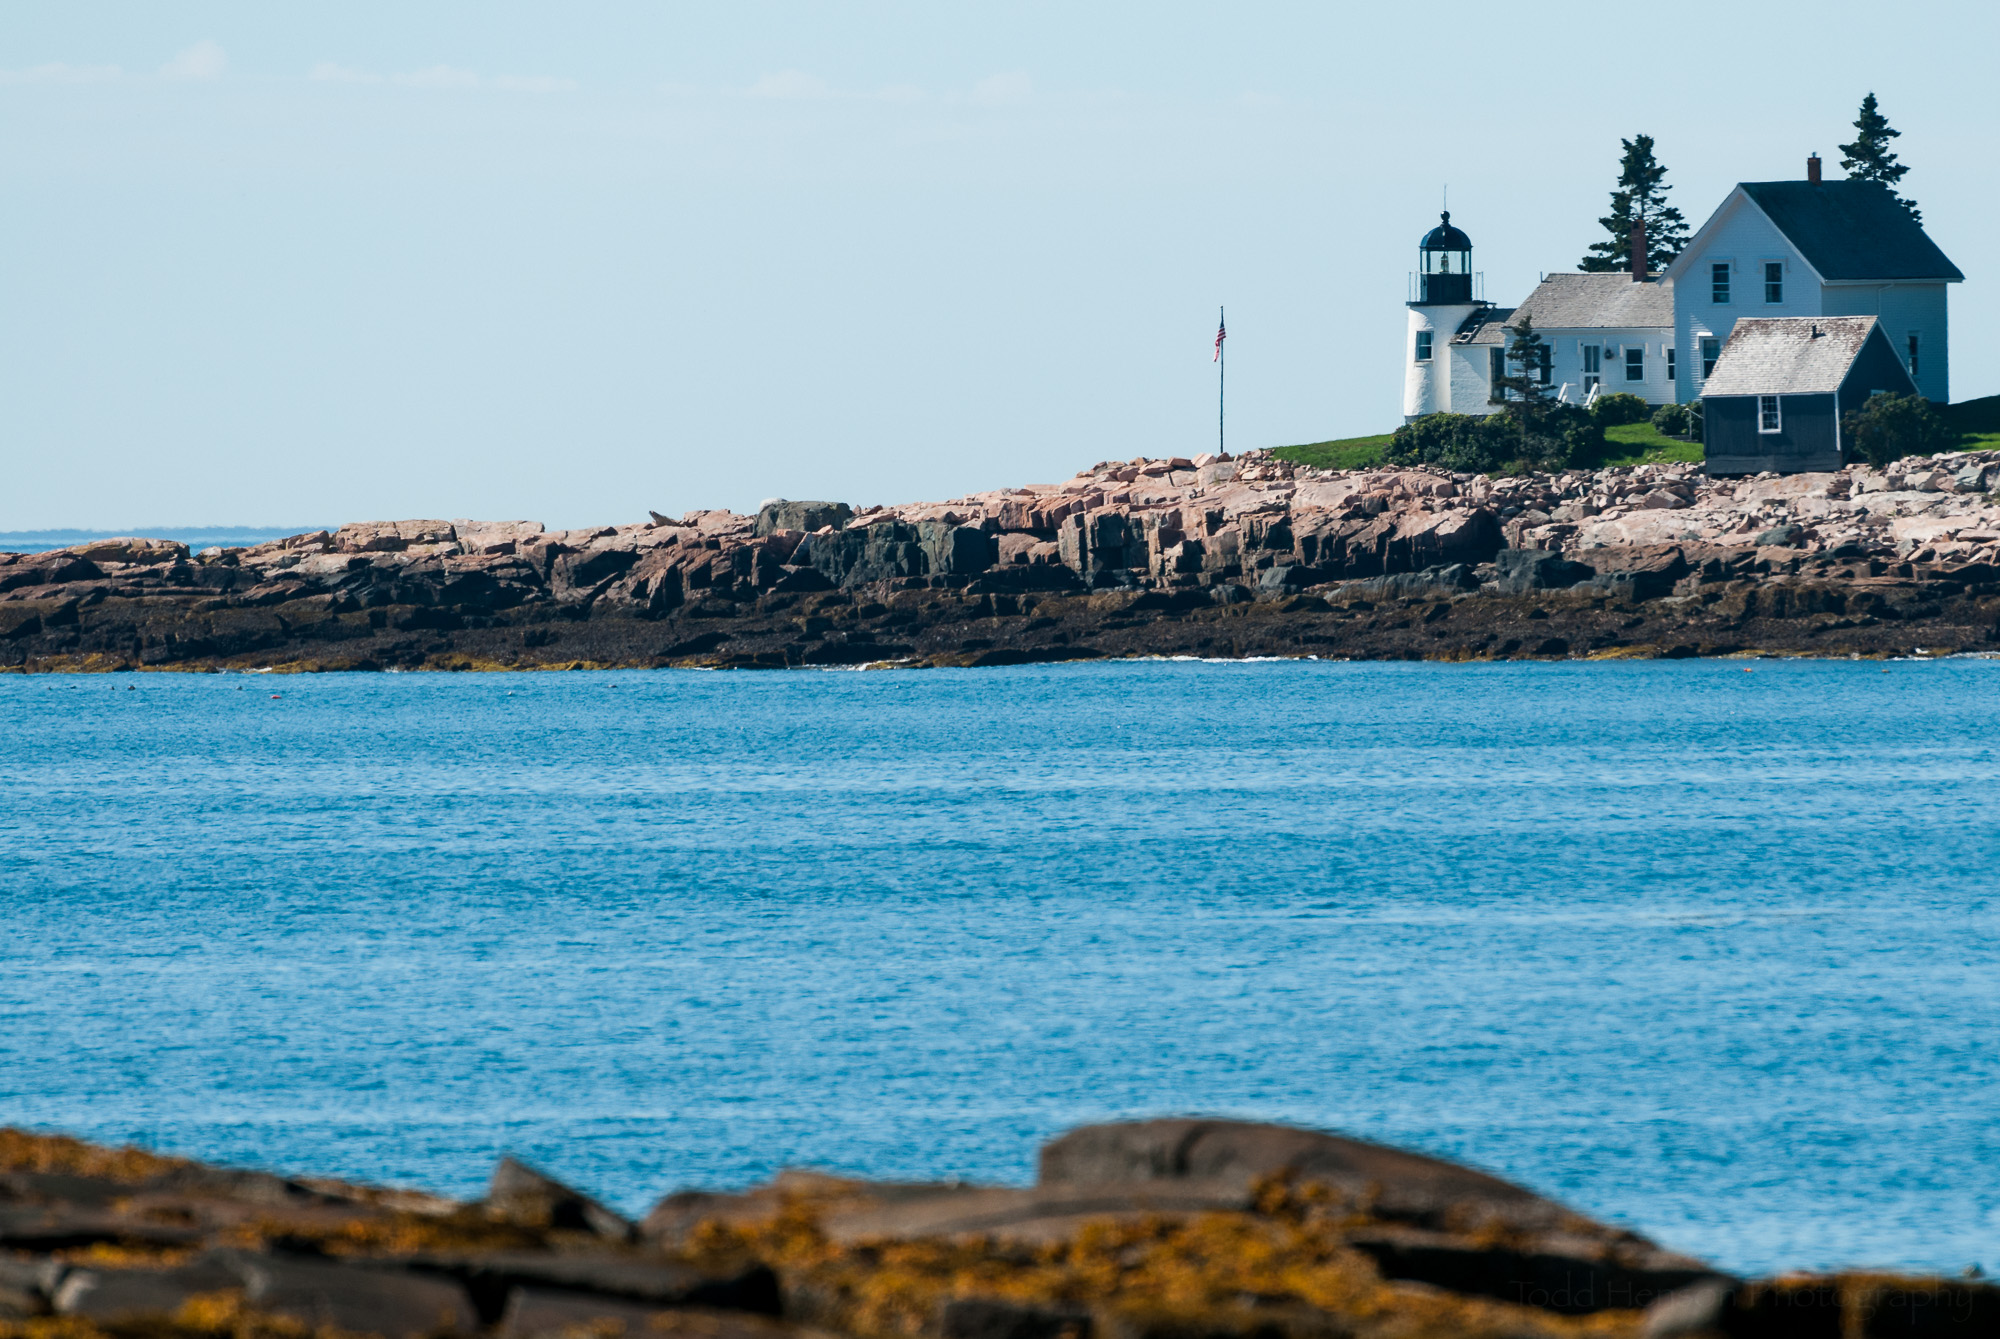 Winter Harbor Light, on Mark Island, Maine, seen from rocky coast of the Schoodic Peninsula portion of Acadia National Park